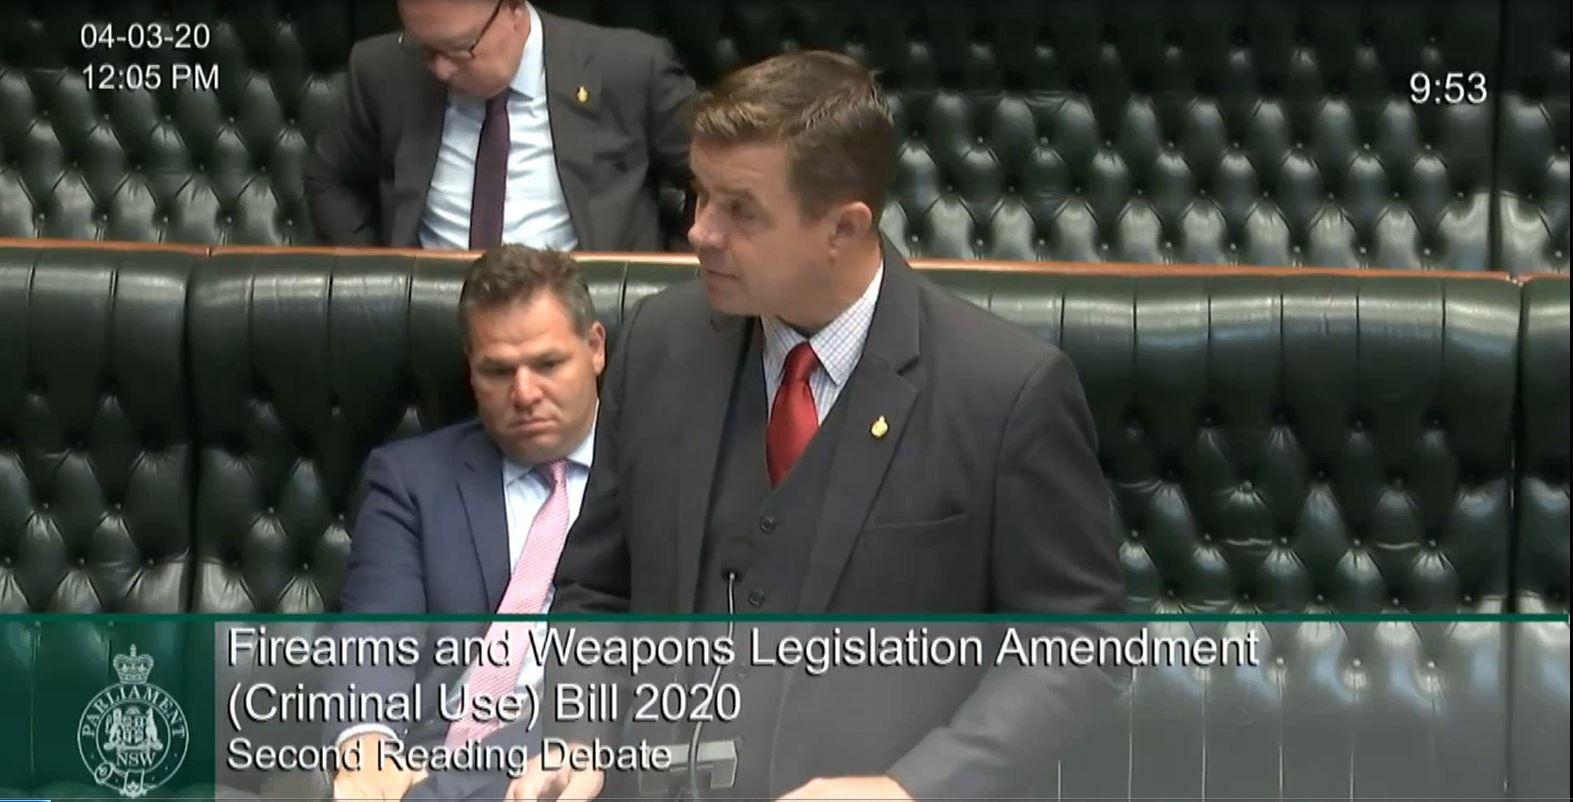 Bills - Firearms and Weapons Legislation Amendment (Criminal Use) Bill 2020 Image